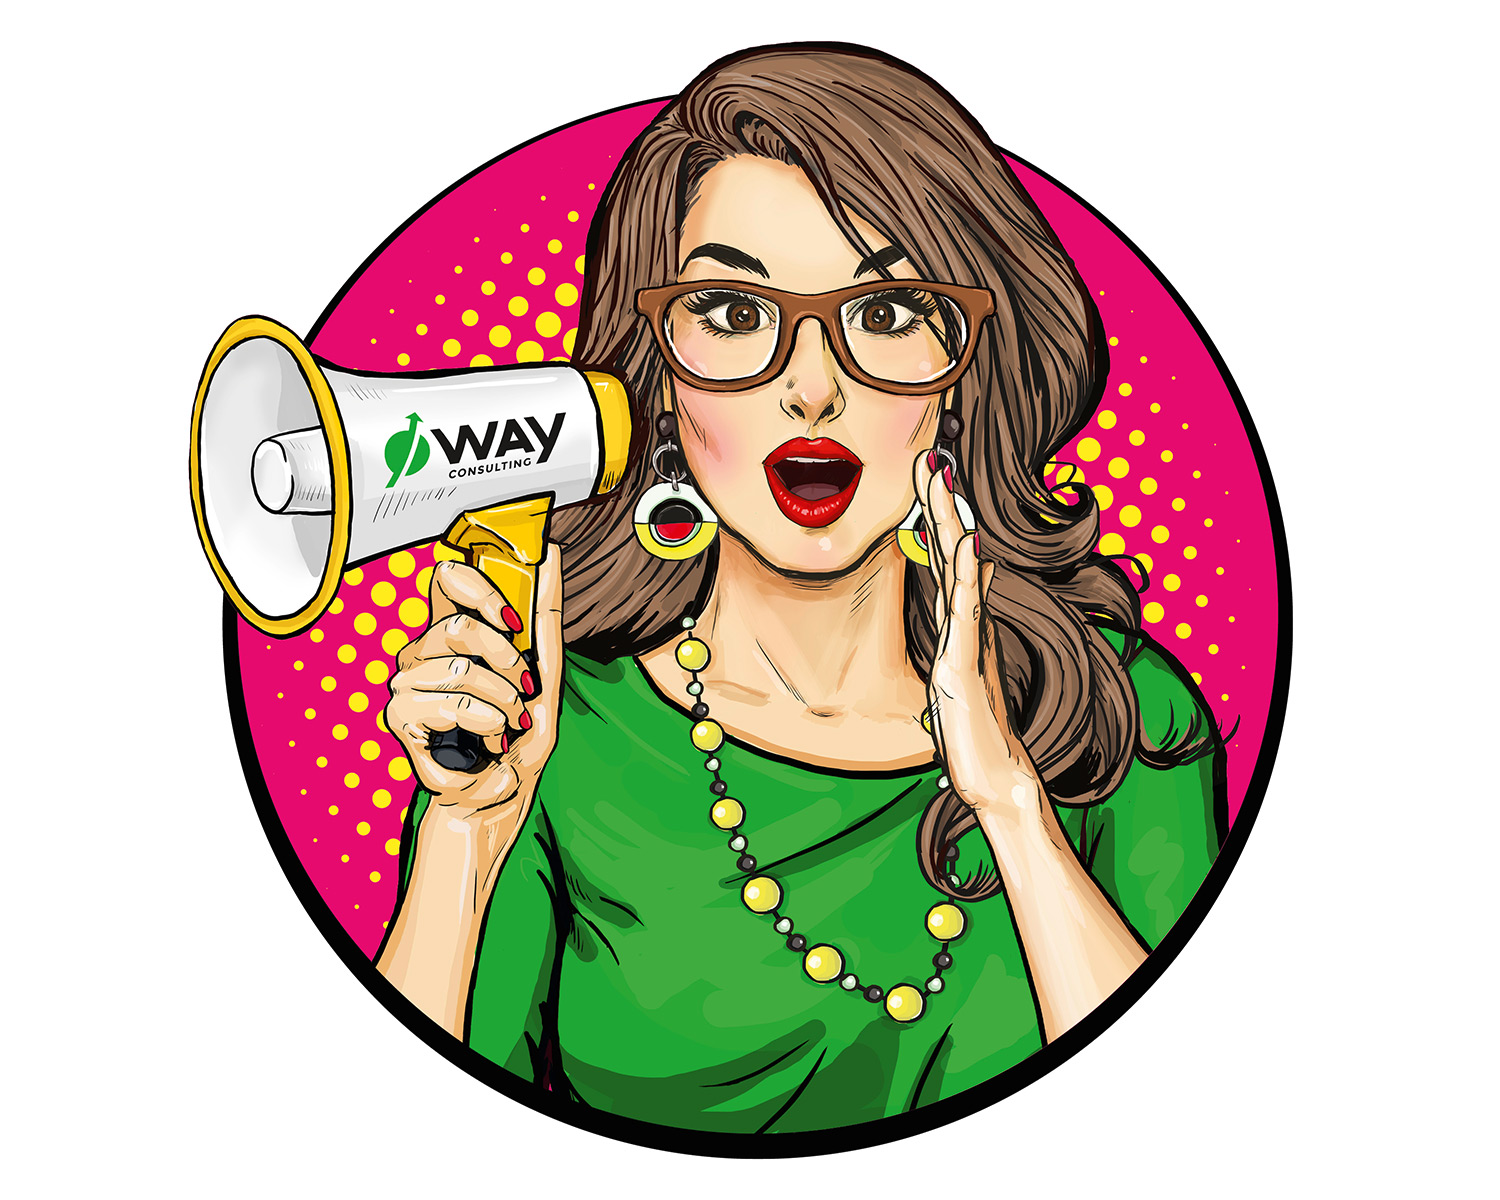 Way Consulting Shout Out Justyna Nimmich